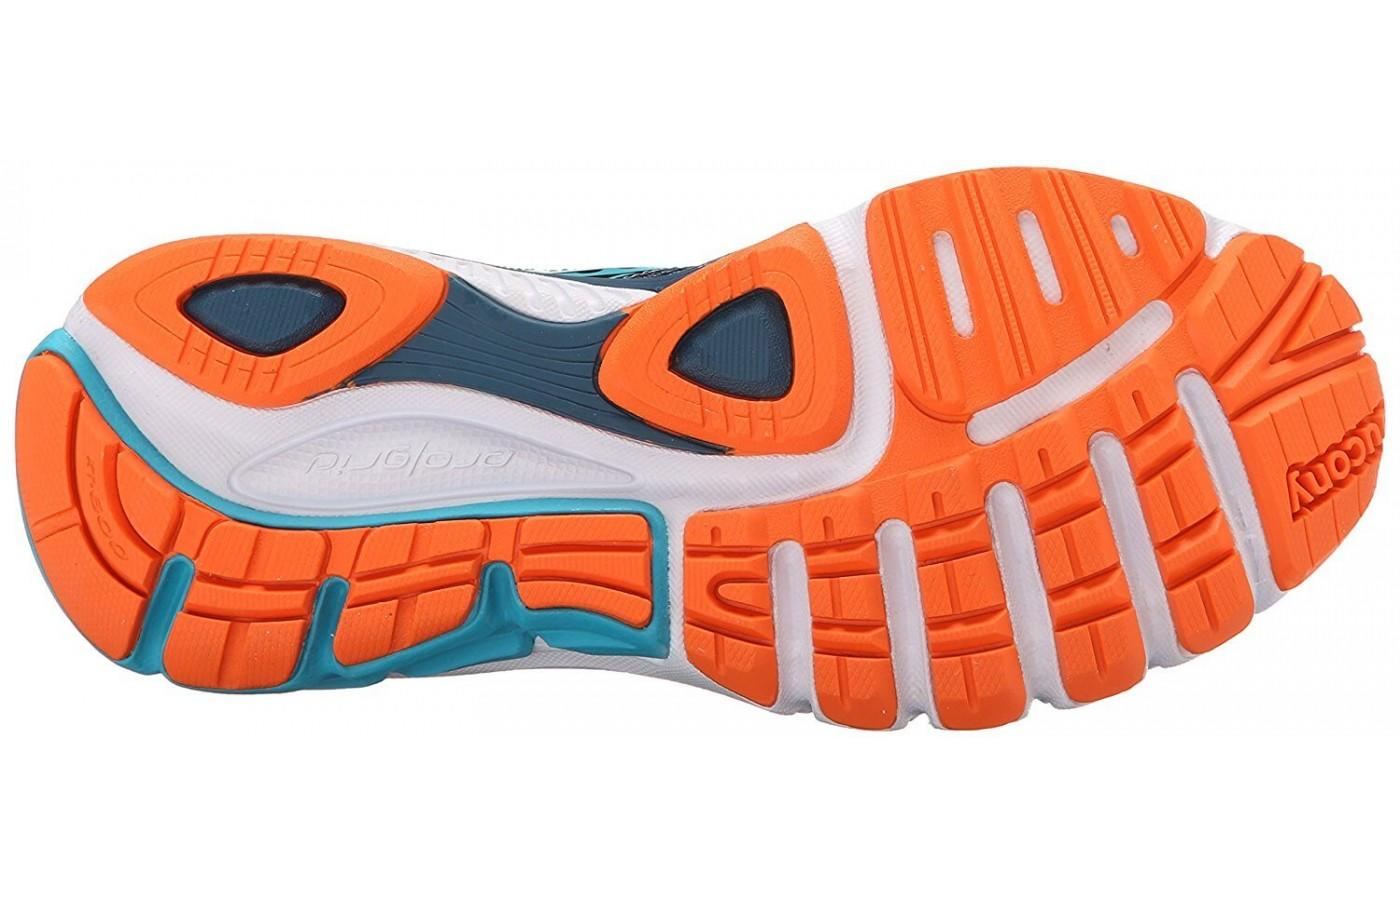 Saucony Lancer 2 outsole features flex grooves